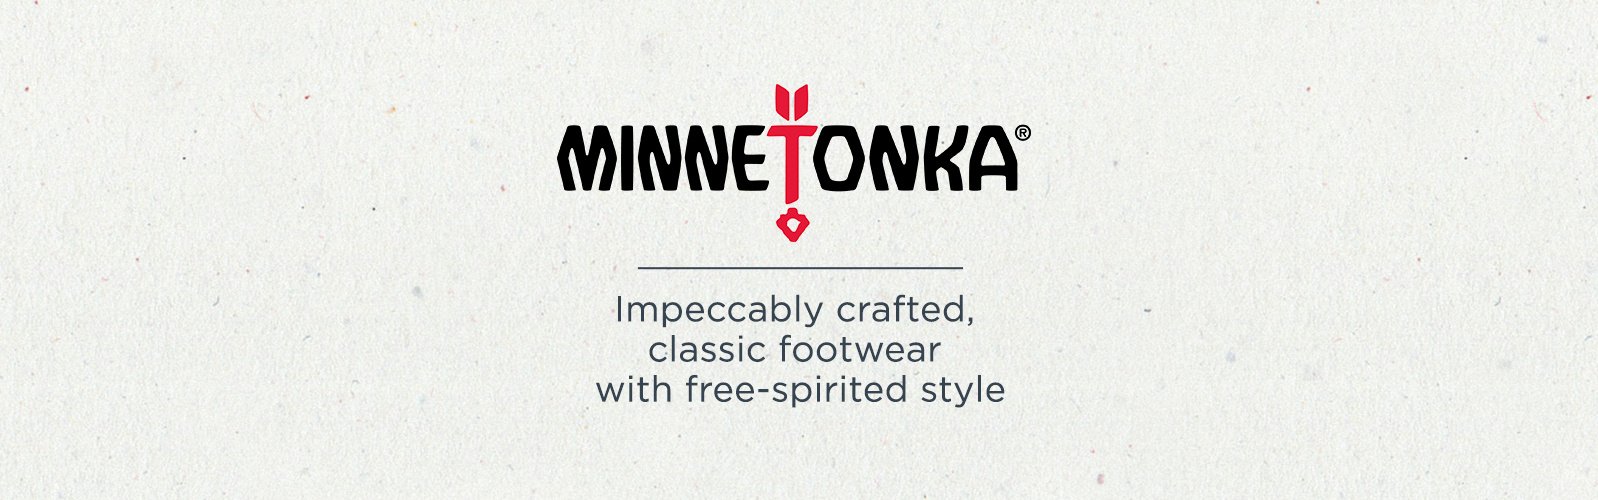 Minnetonka — Impeccably crafted, classic footwear with free-spirited style